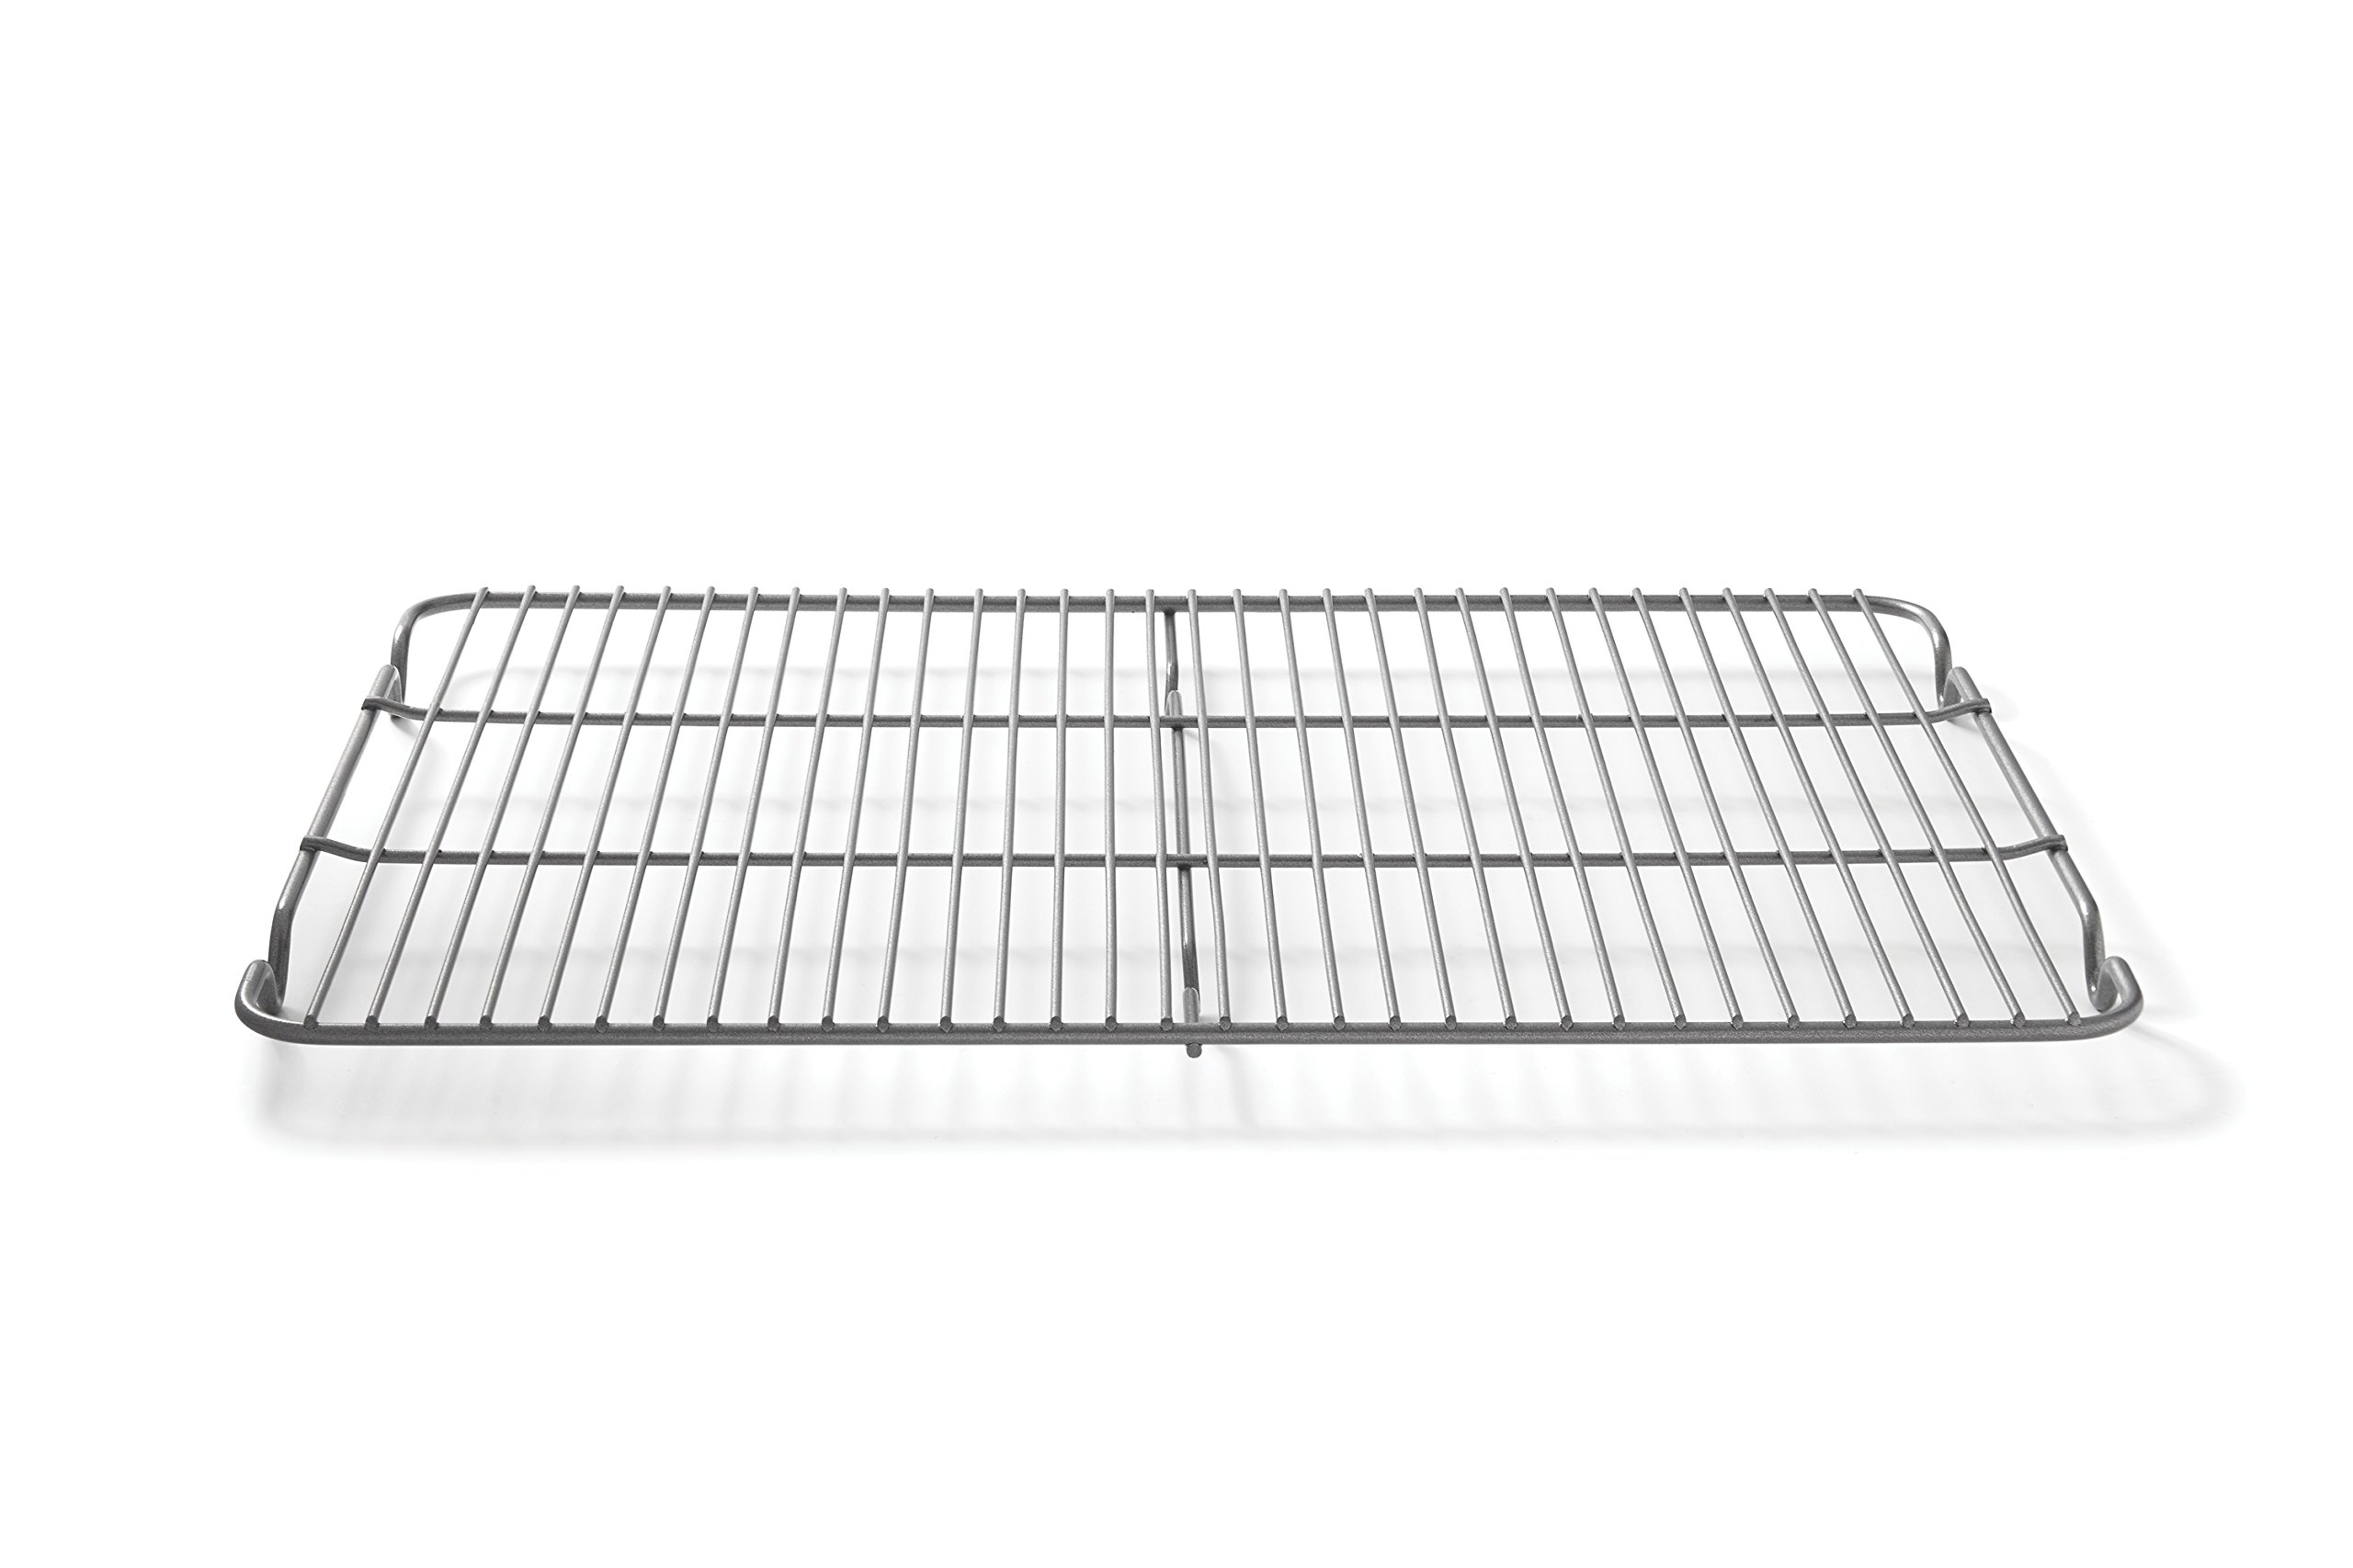 Calphalon Signature Nonstick Bakeware 12-in. x 17-in. Cooling Rack, 2000610